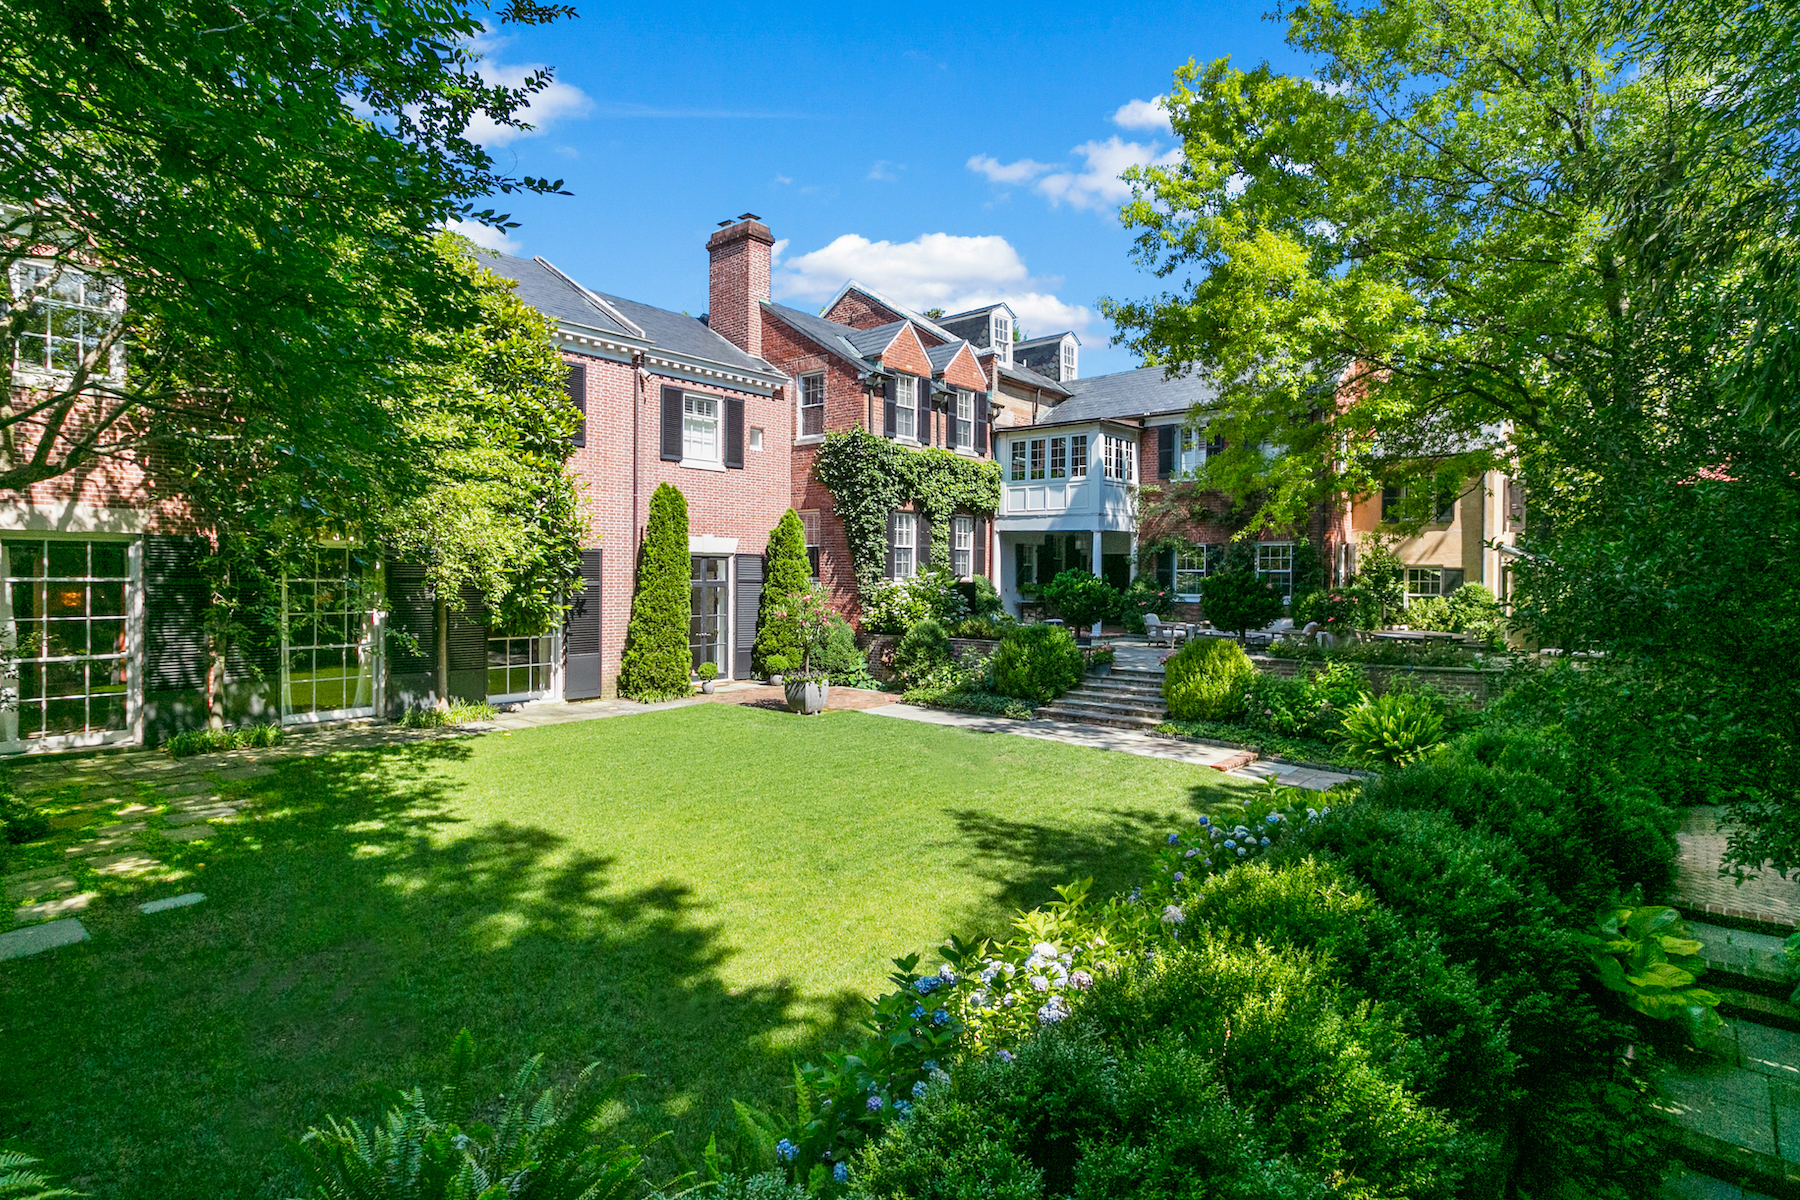 Single Family Homes for Sale at Georgetown Estate 1405 34th St NW Washington, District Of Columbia 20007 United States